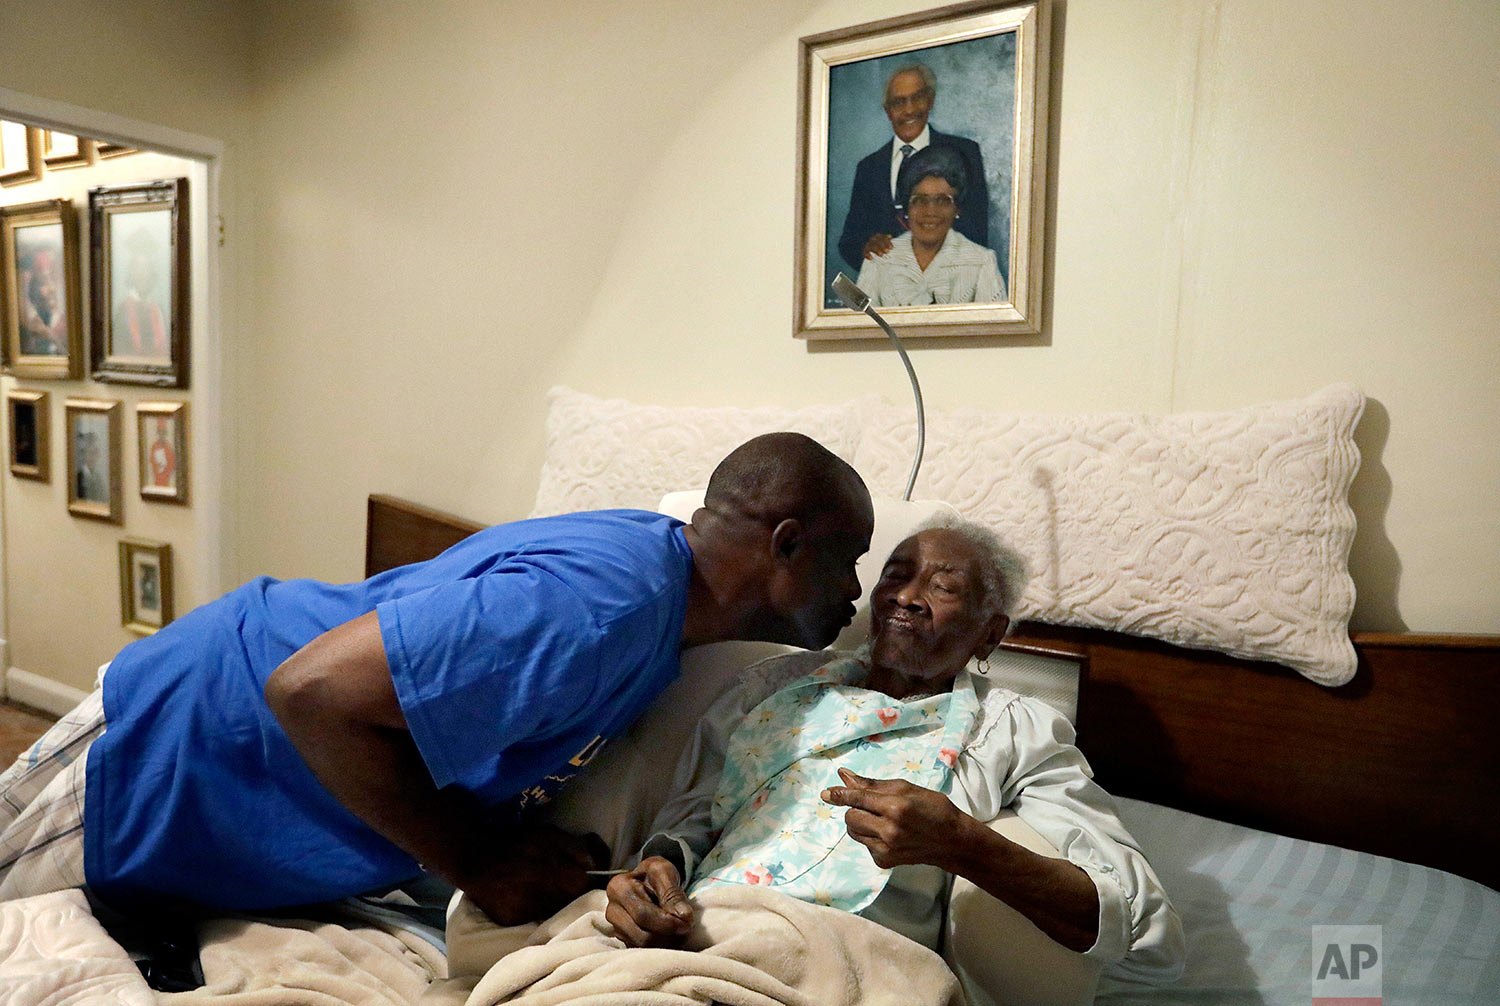 """Greg Gunner, left, kisses his grandmother Mabel Bishop, 99, on Tuesday, Sept. 26, 2017 in Port Arthur, Texas, in their home that was damaged by Hurricane Harvey. Gunner carried his grandmother, stricken with Alzheimer's disease, out of the house as the floodwaters rose, telling her they were going fishing to try to keep her calm. He voted for Hillary Clinton in November, and says the country's political divides have left him with little faith in the government's ability to get things done. But he believes the storm that wrecked his town is a preview of what global warming will bring if the nation's divided political sides don't find common ground to address it. """"The intensity of the destruction taking place these days, there's something going on. I think it's a wake-up call, to say, hey, what's important? What's really important?"""" he said. """"Are you going to work together, or are you going to pull each other apart?"""" (AP Photo/David Goldman)"""